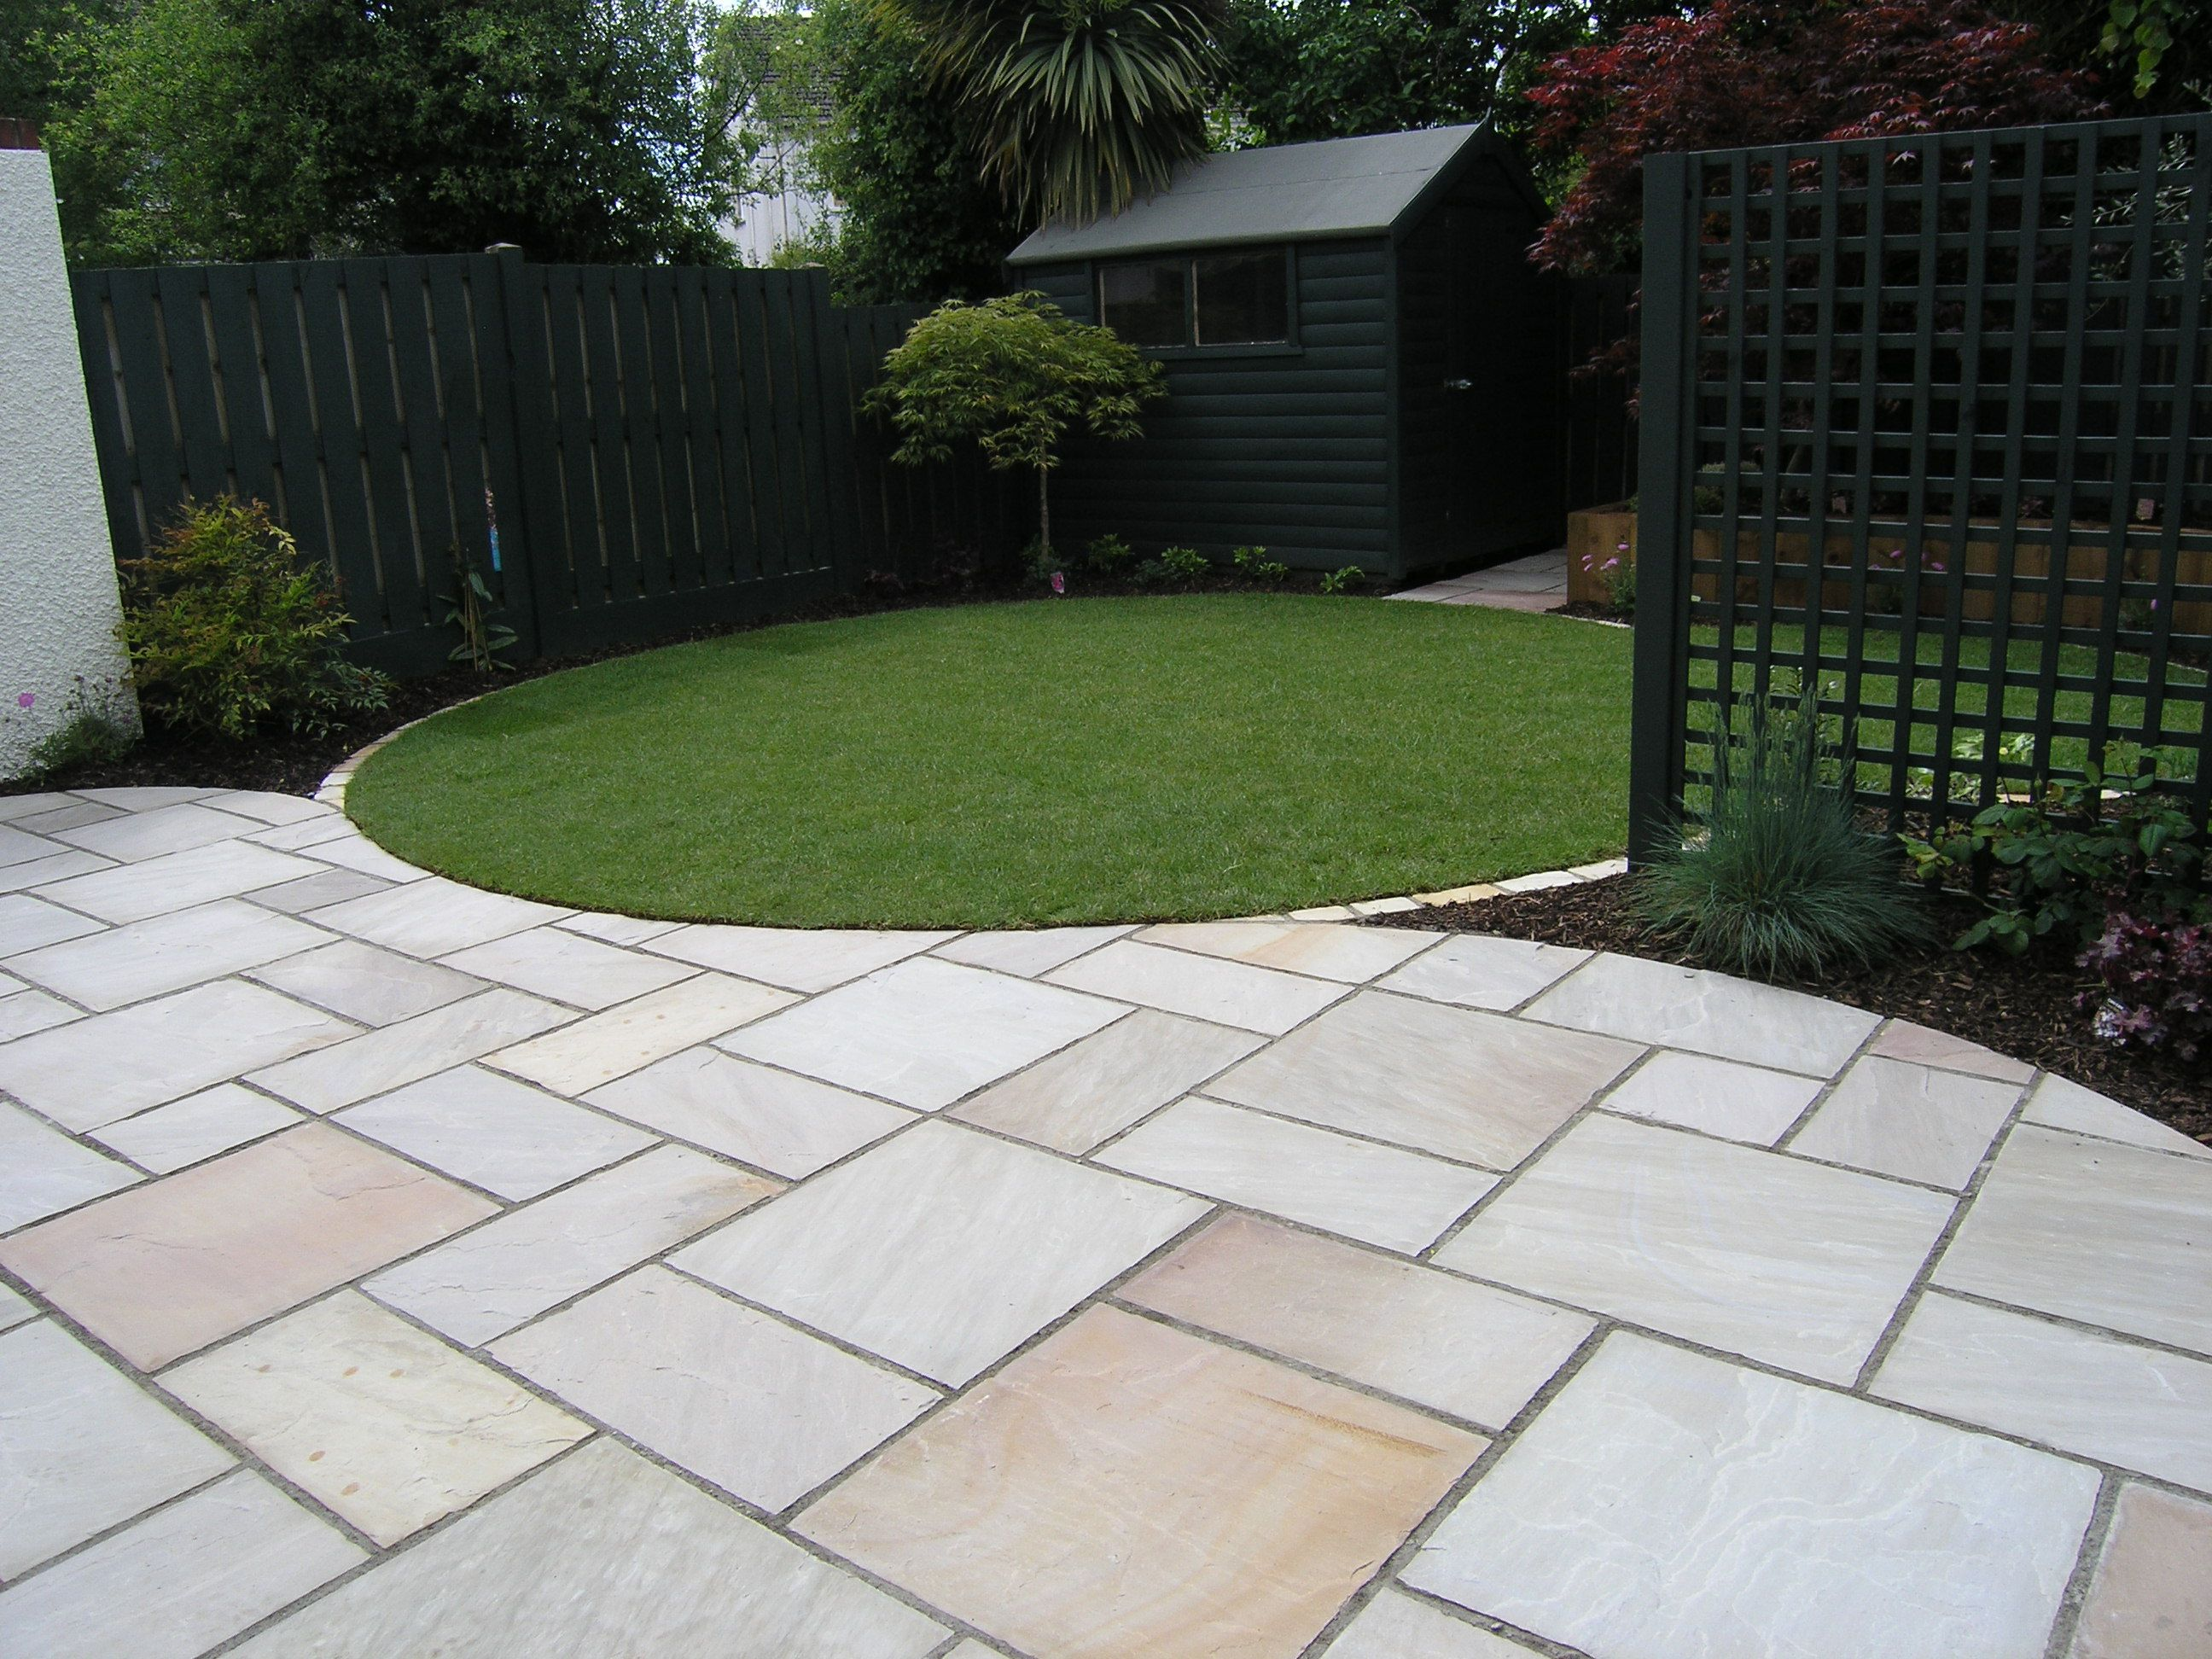 Garden Patio Designs garden paving (2) | house | pinterest | garden paving, garden